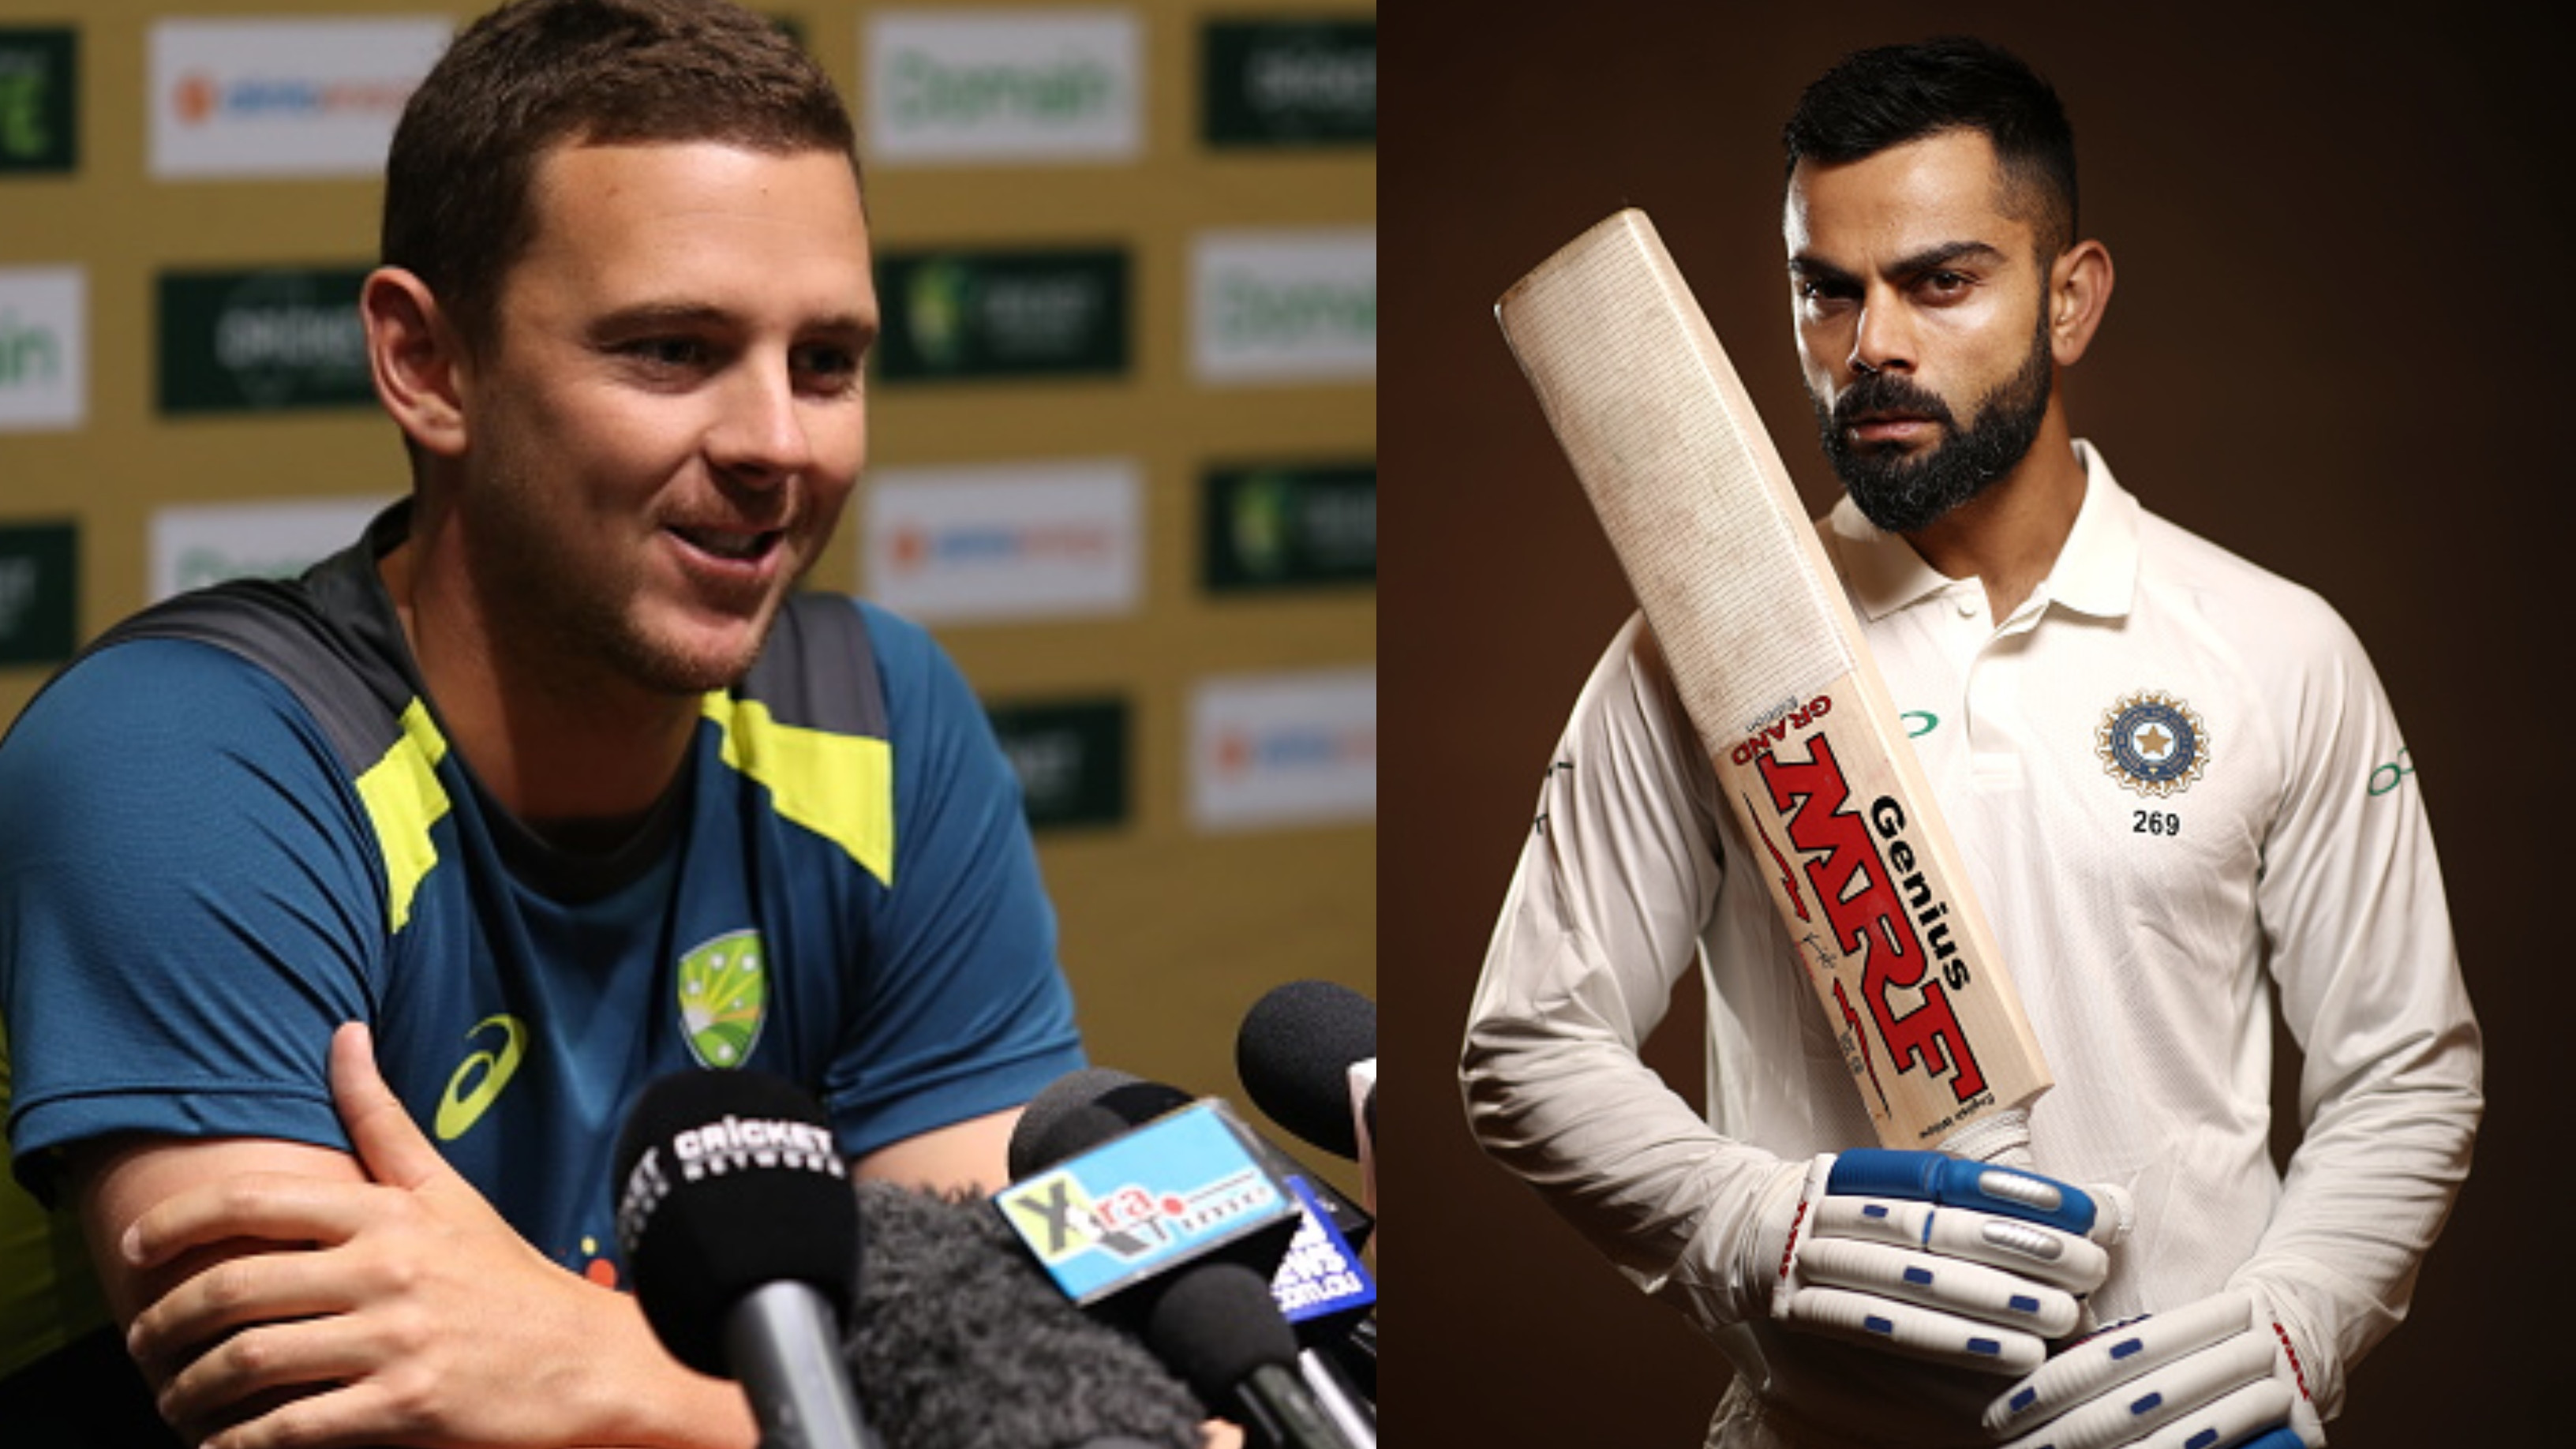 AUS v IND 2018-19: Getting Virat Kohli out early will be key to control the best batting line-up in the world, says Josh Hazlewood